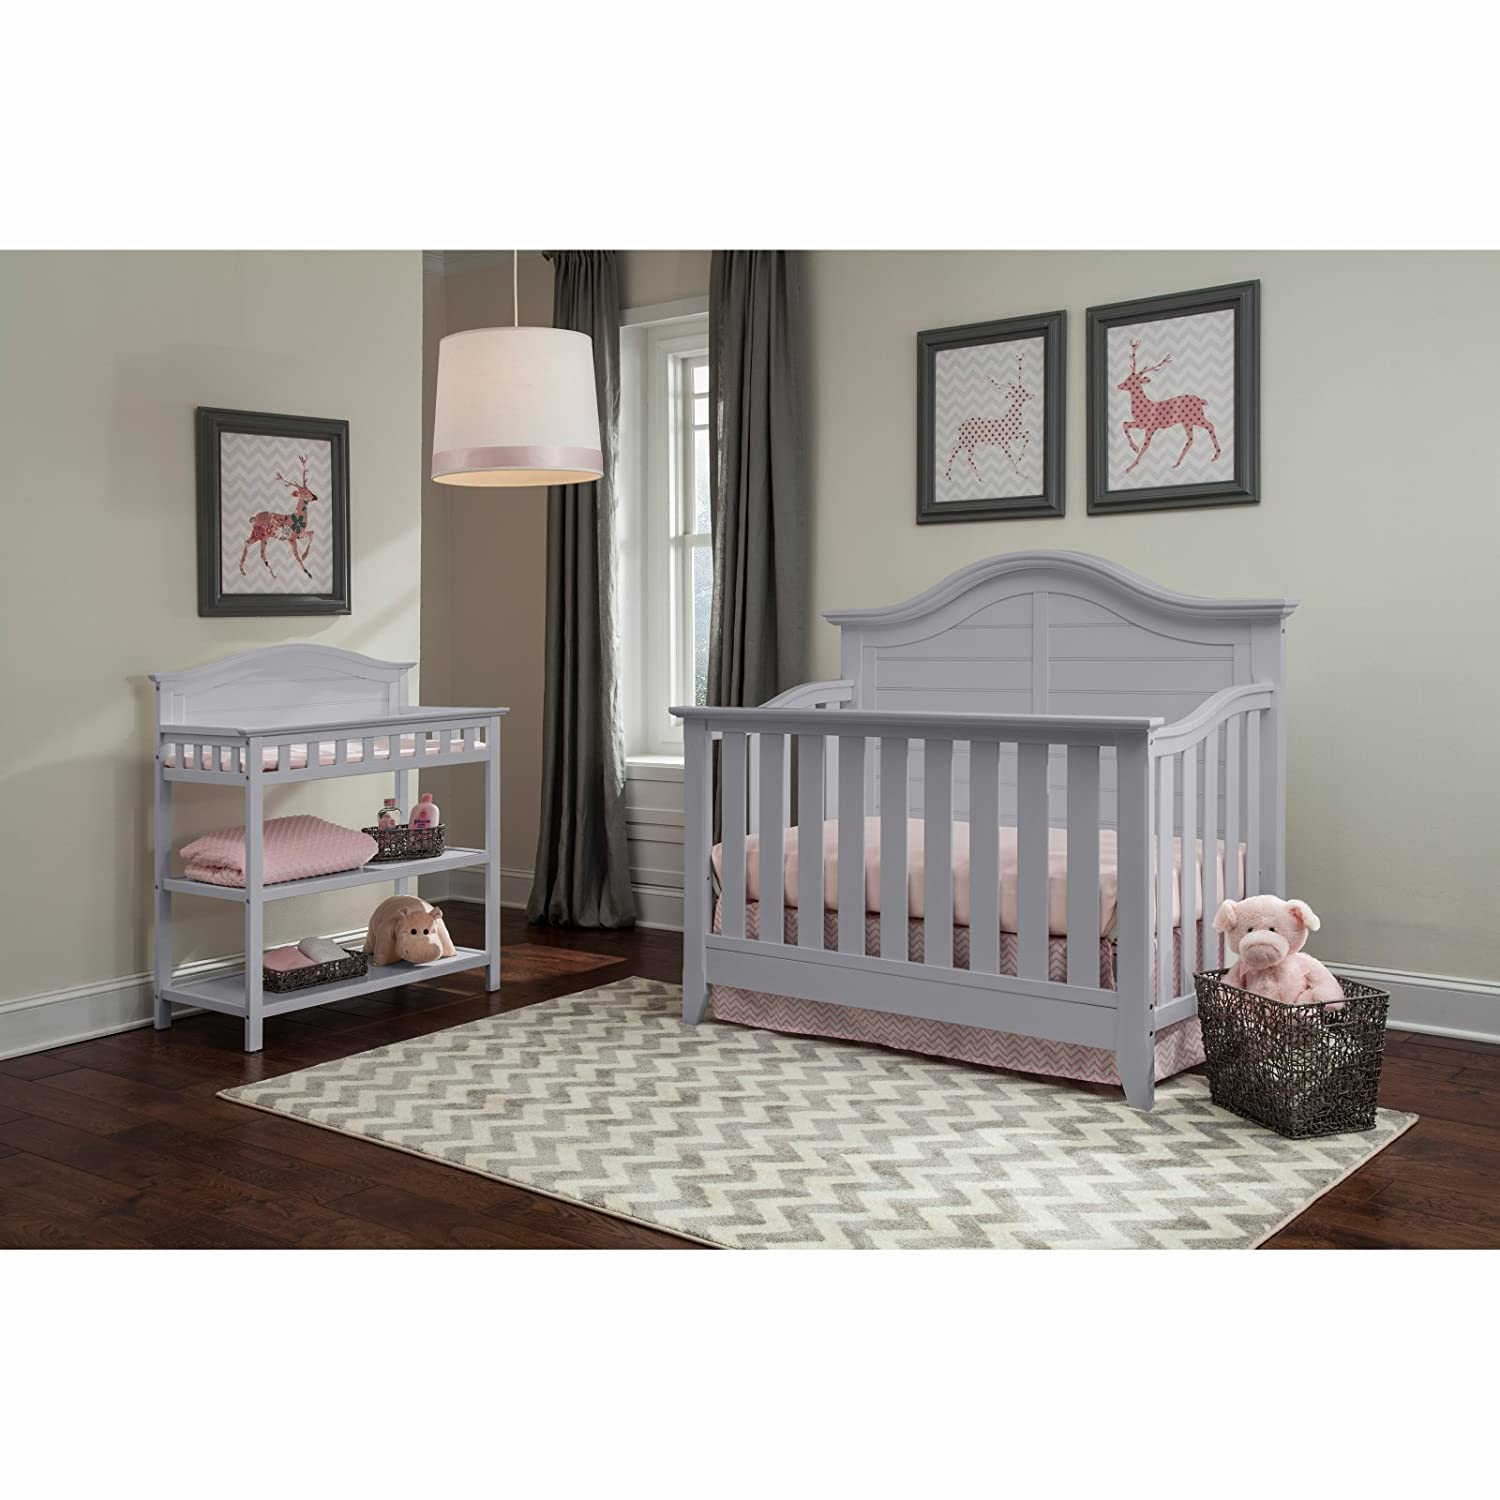 amazon com thomasville kids southern dunes lifestyle 4 in 1